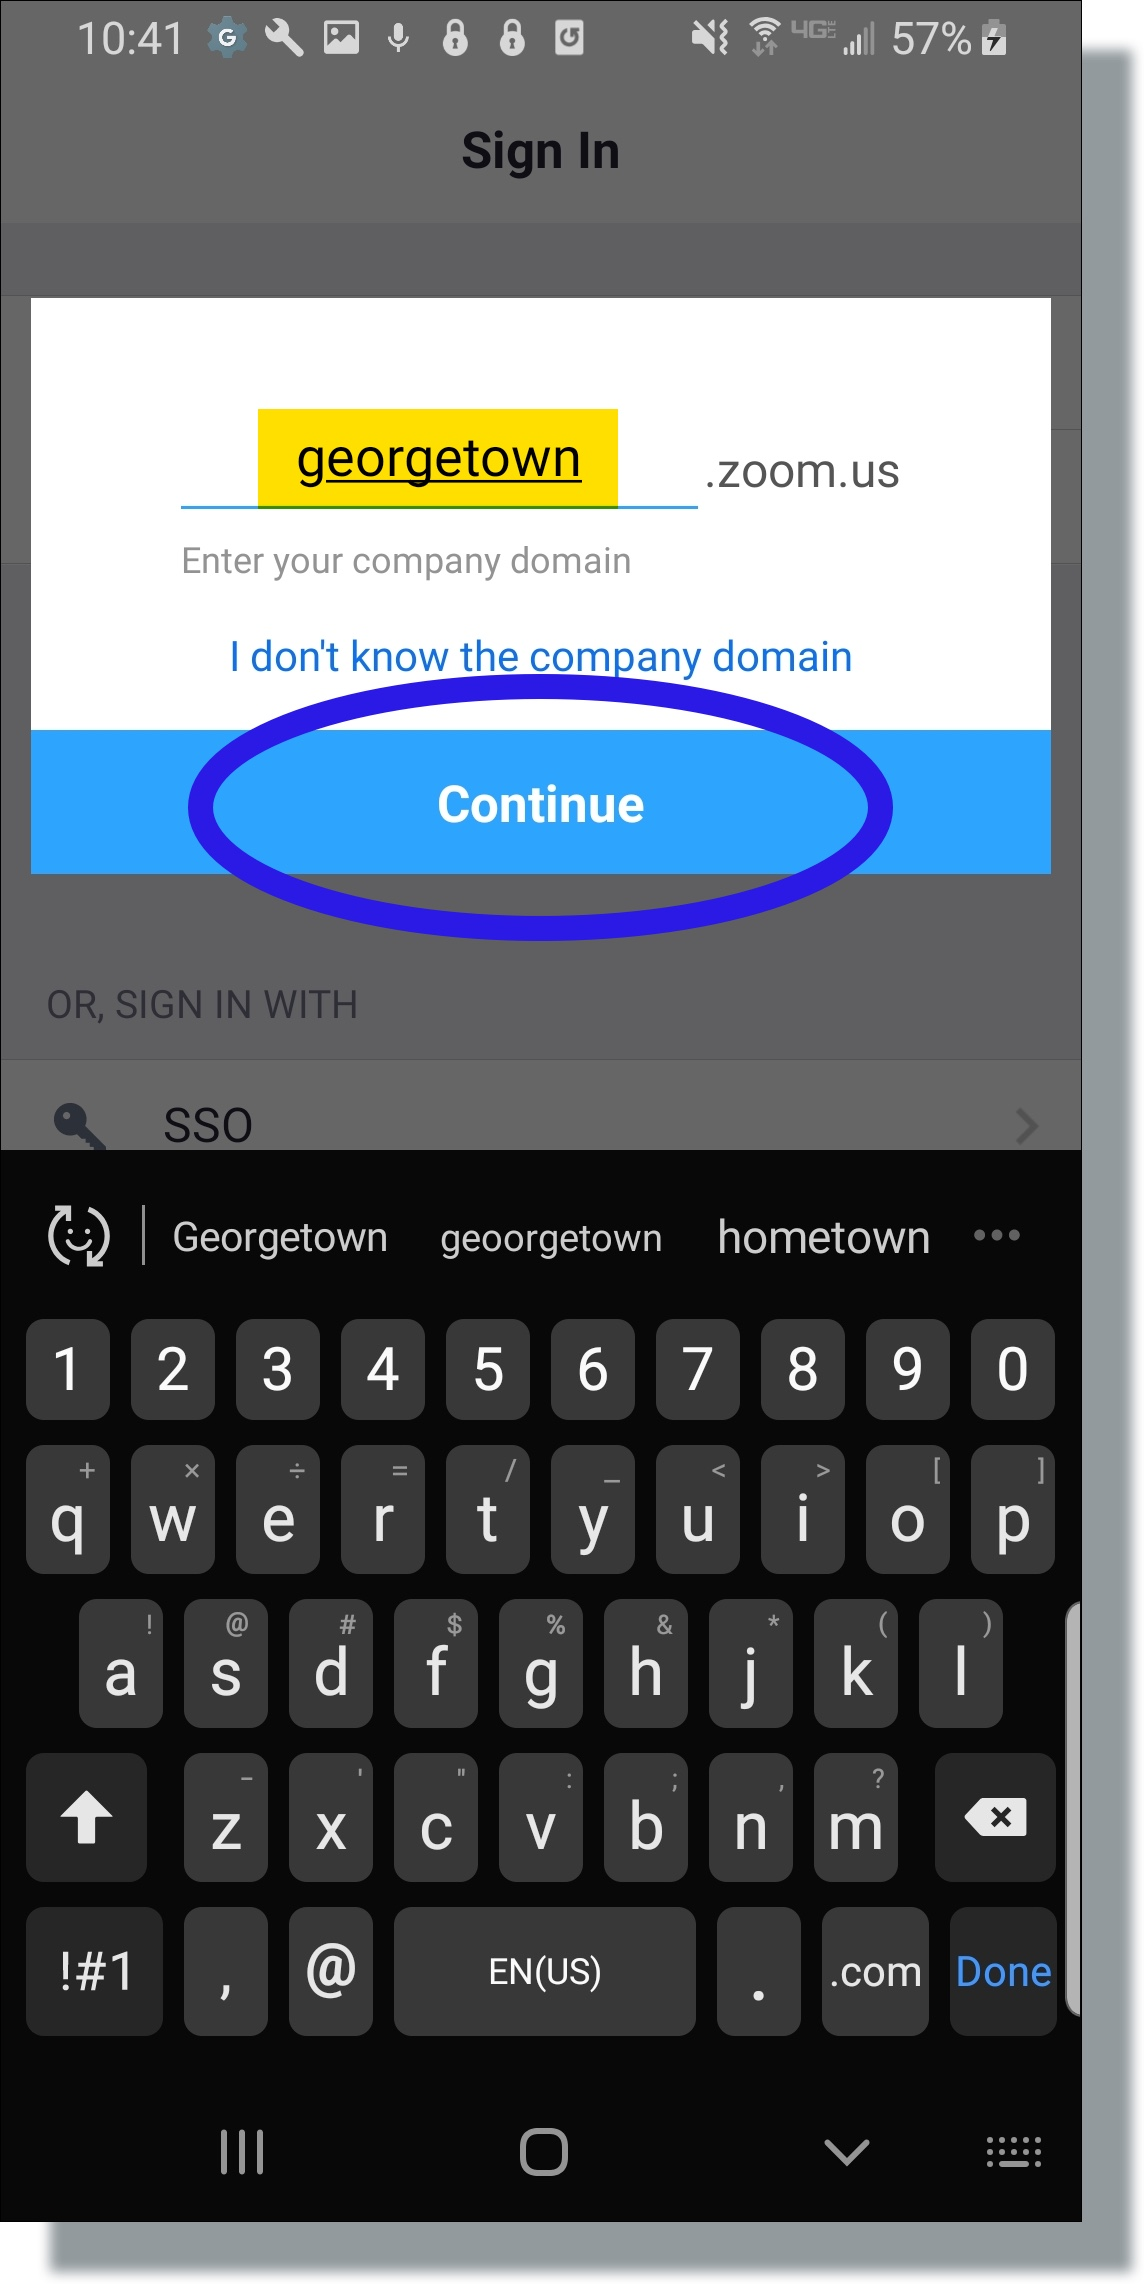 Enter 'georgetown' for the company domain name and then tap Continue